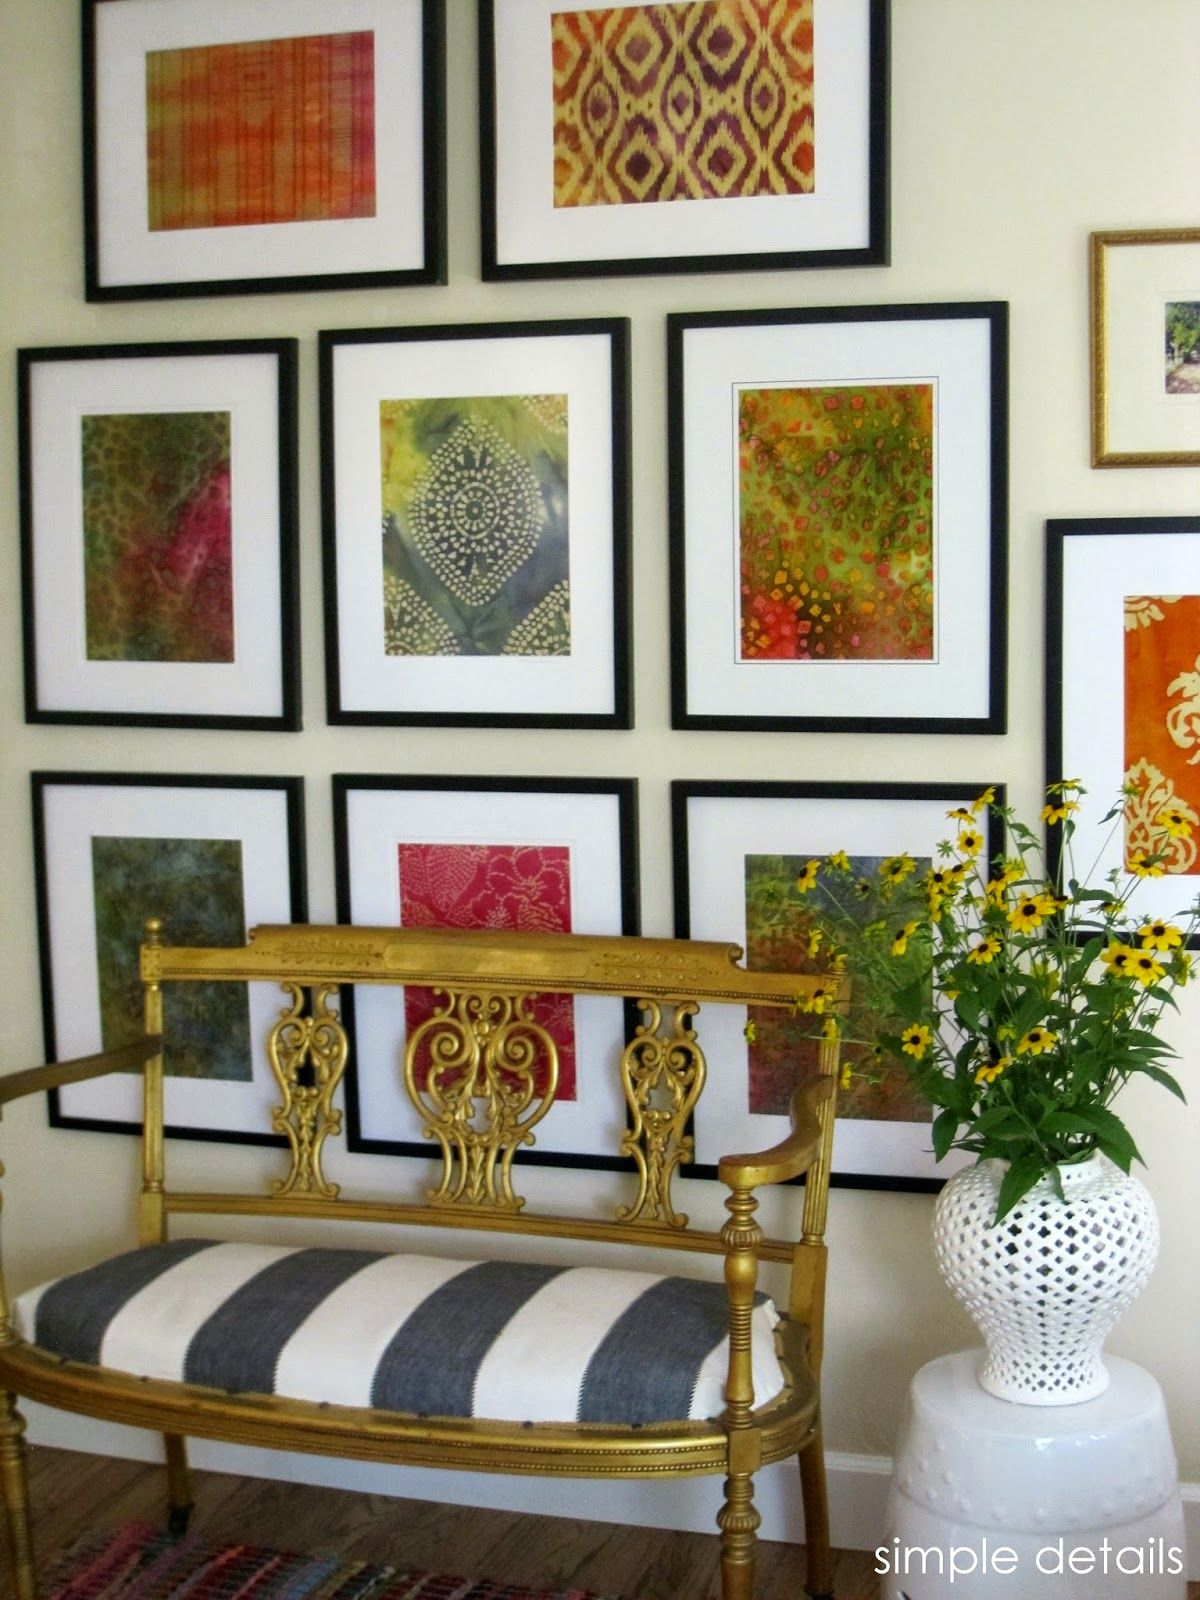 Simple Details Diy Framed Batik Fabric Framed Fabric Wall Art Home Decor Framed Fabric